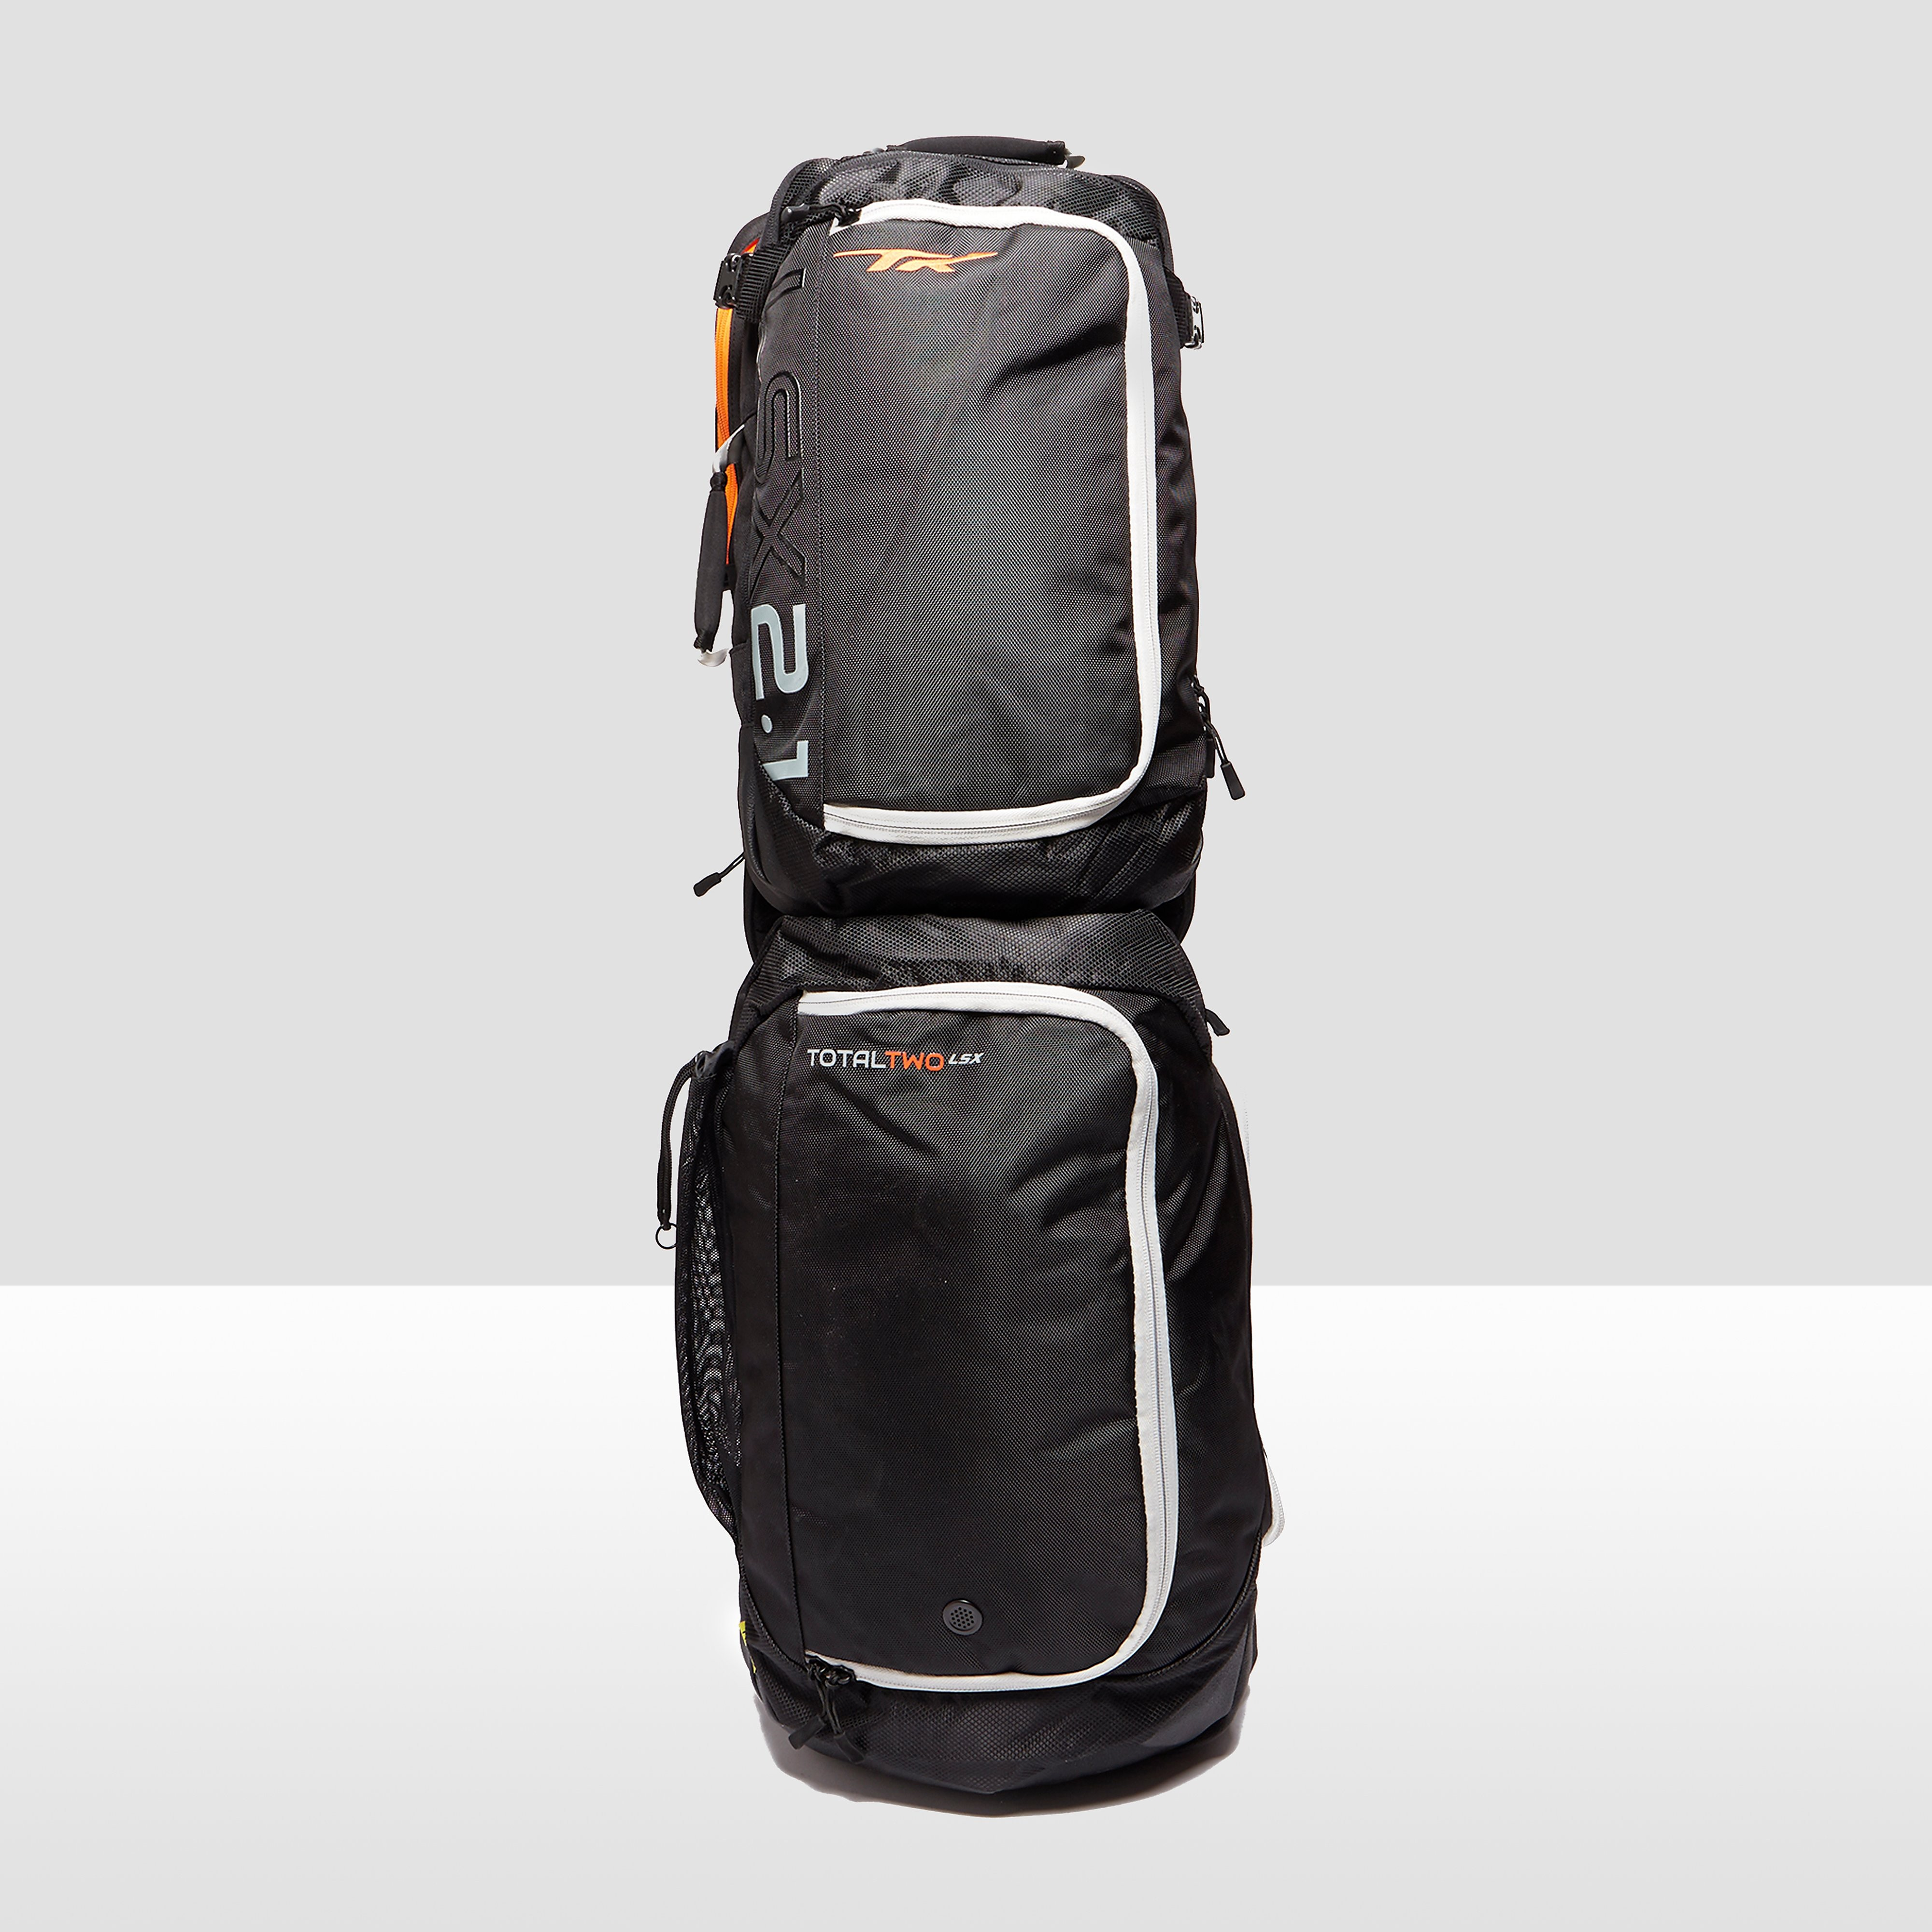 TK Hockey LSX 2.1 Hockey Bag